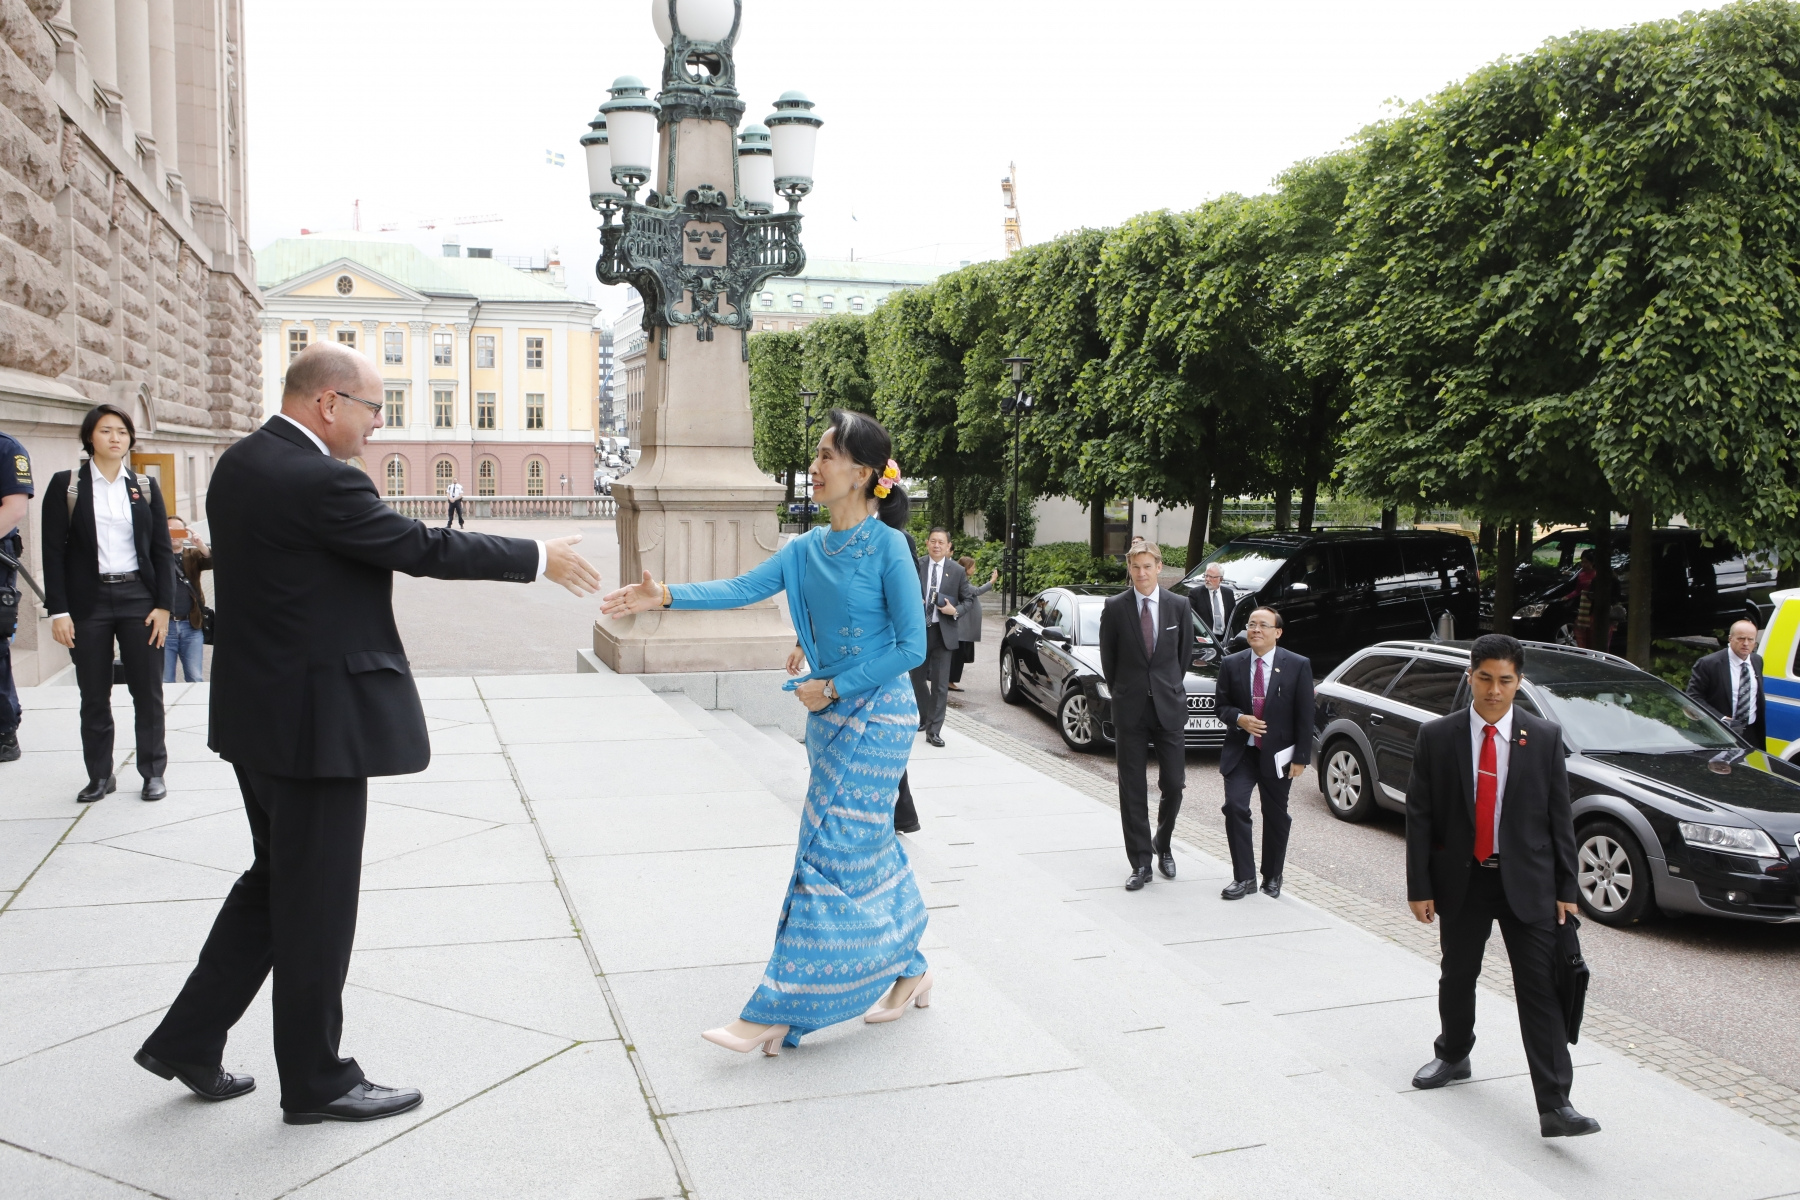 Aung San Suu Kyi visits the Swedish parliament in 2016